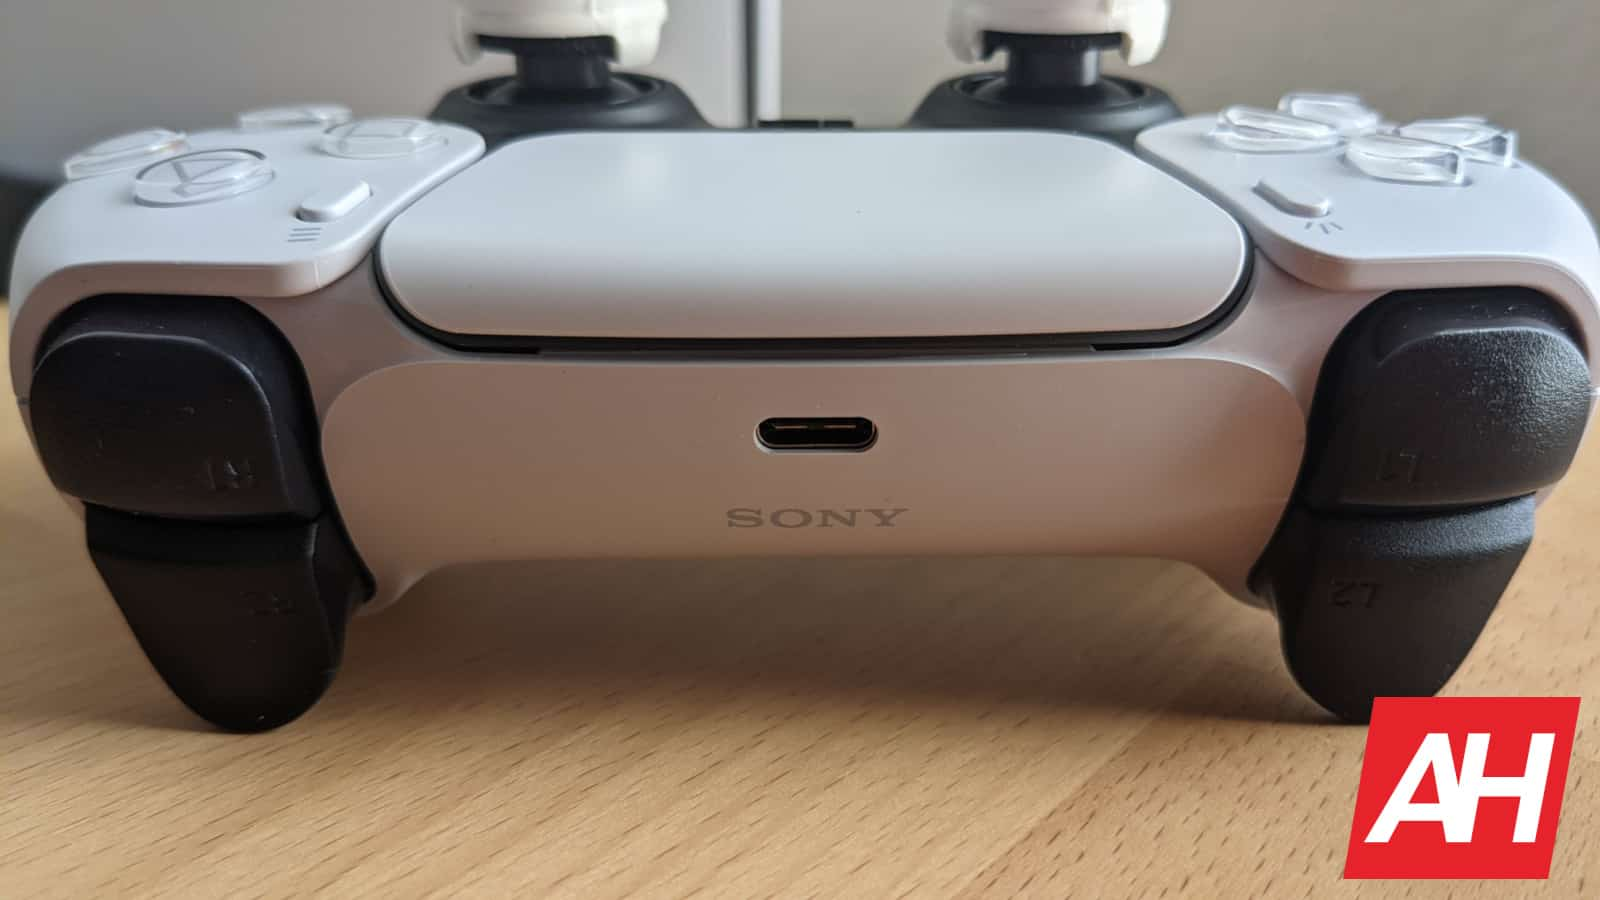 Sony PS5 Review 4